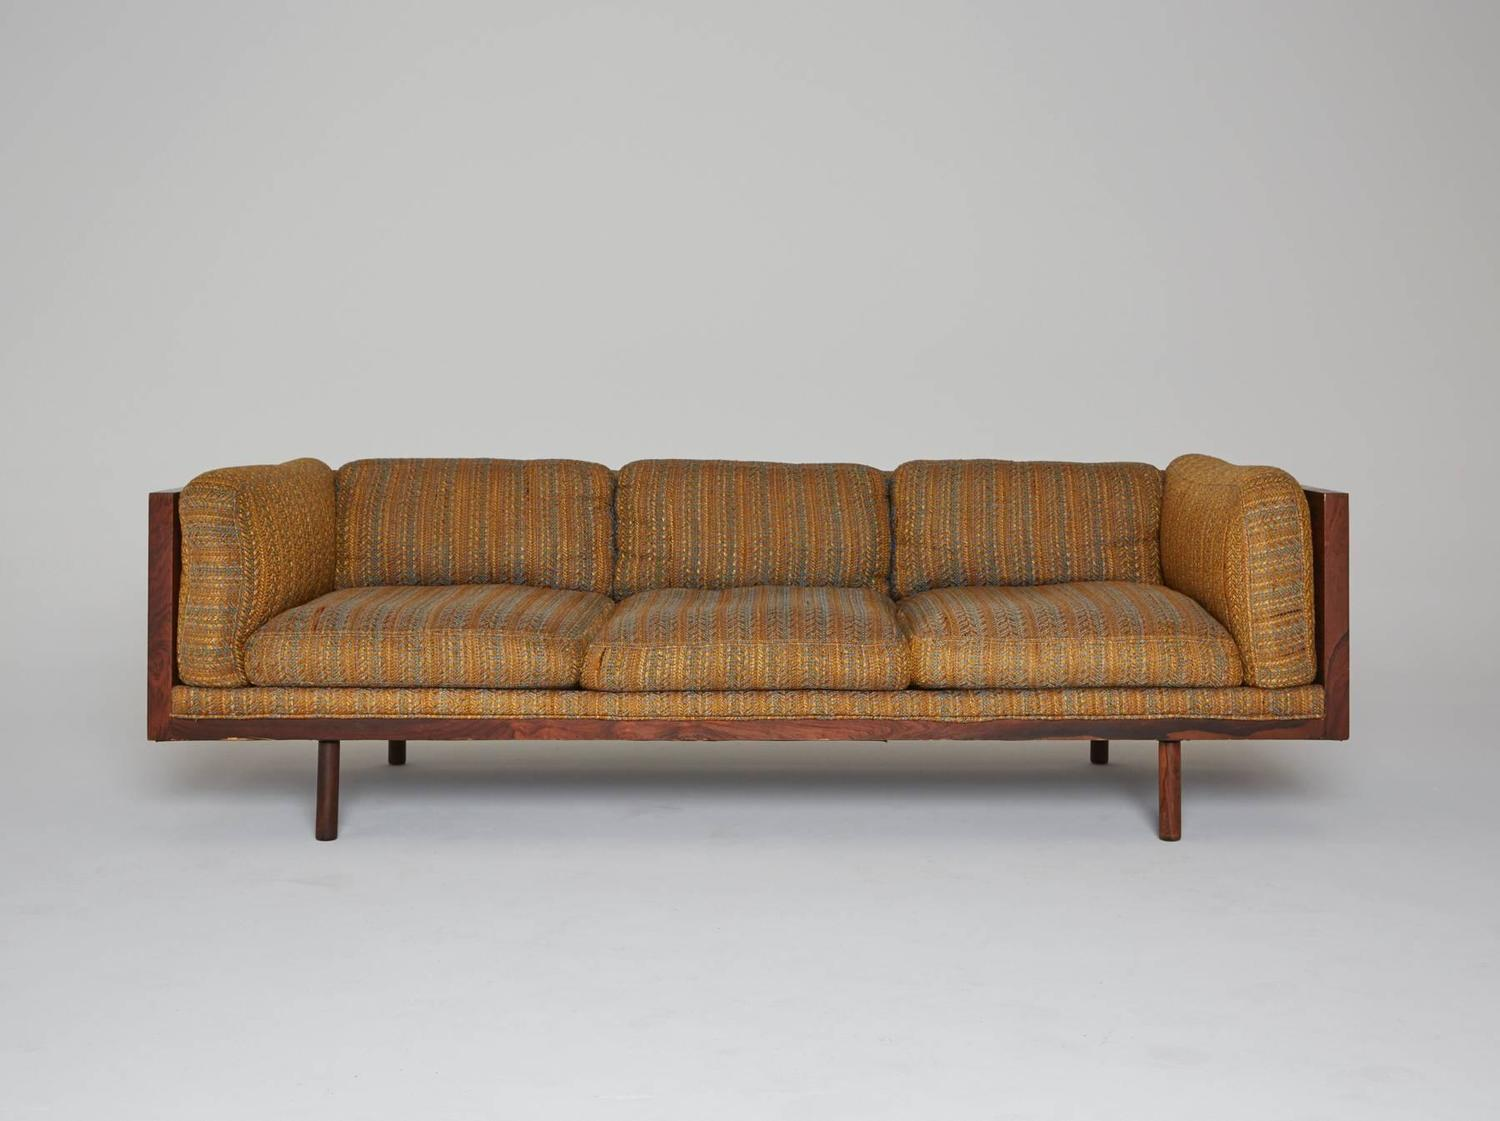 Rosewood Case Sofa By Milo Baughman For Thayer Coggin For Sale At 1stdibs